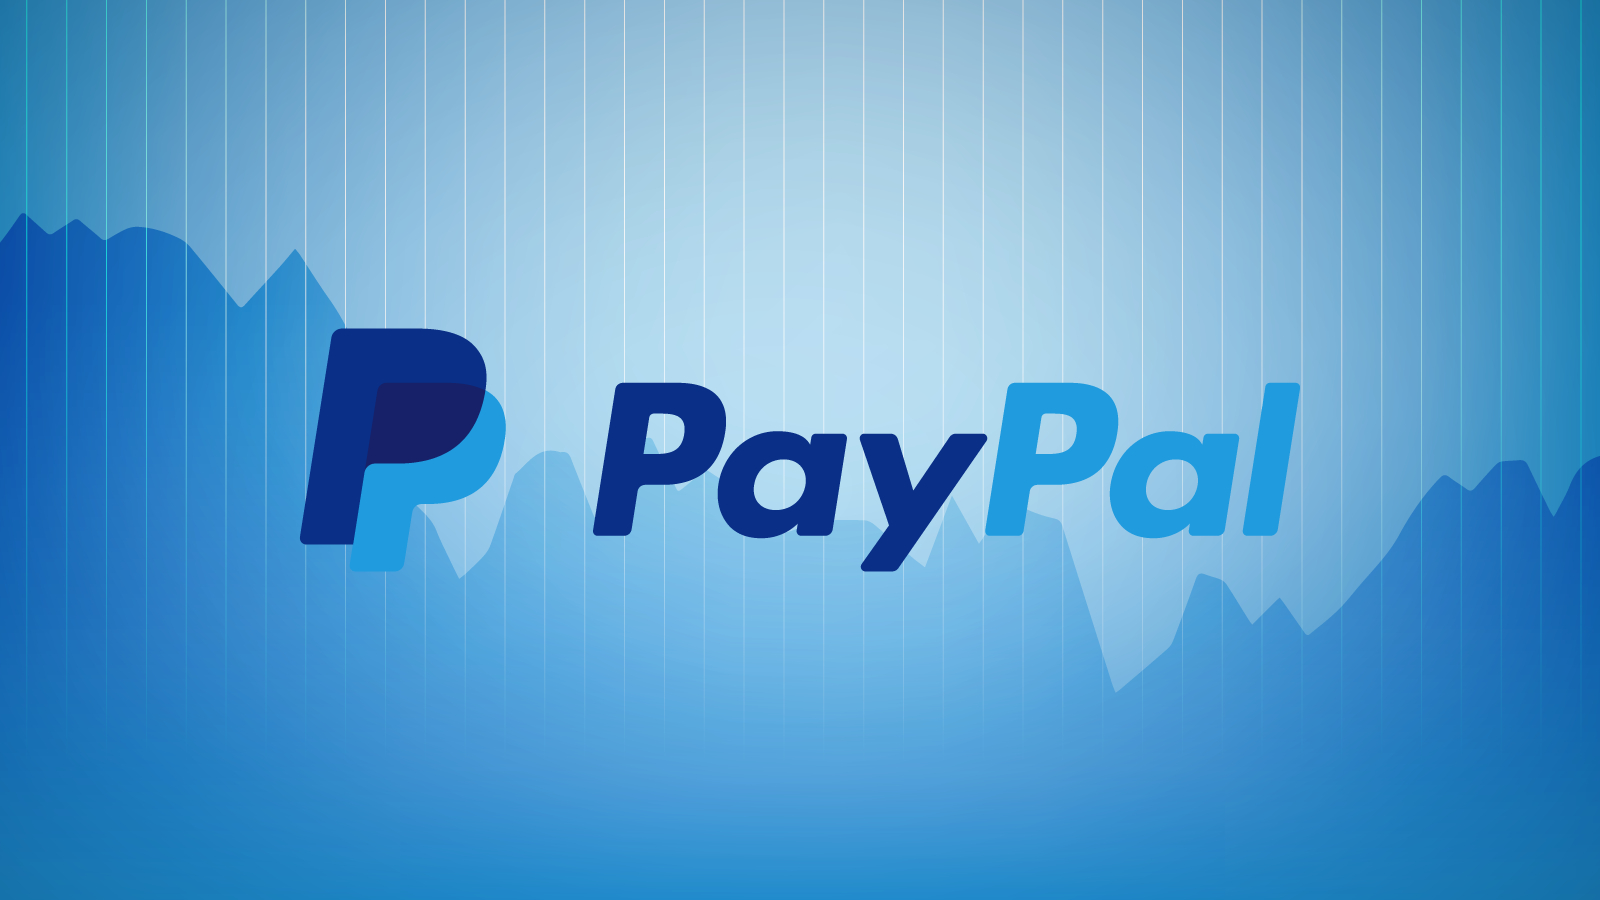 PayPal sells its consumer credit portfolio to Synchrony for